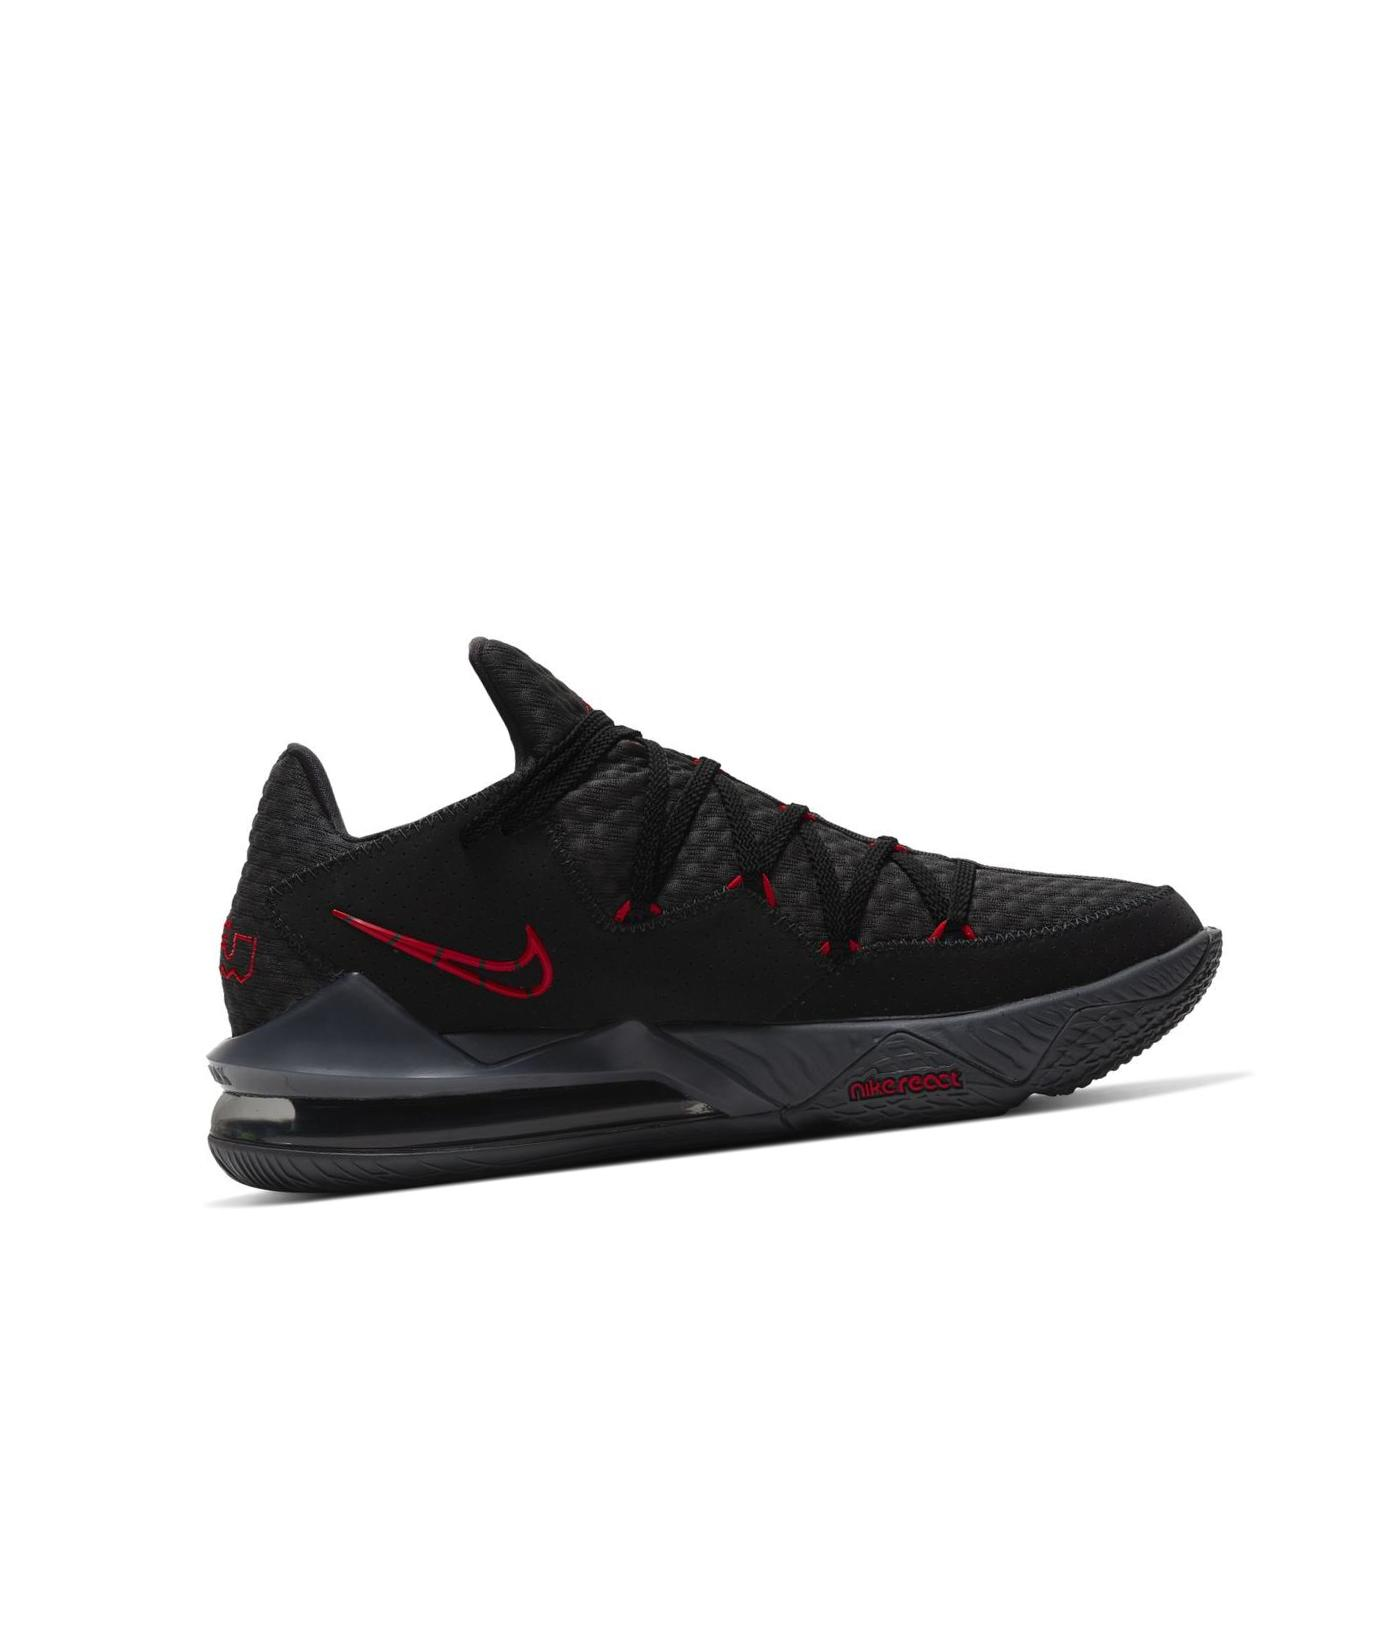 LeBron 17 Low Black/Dark Grey/University Red